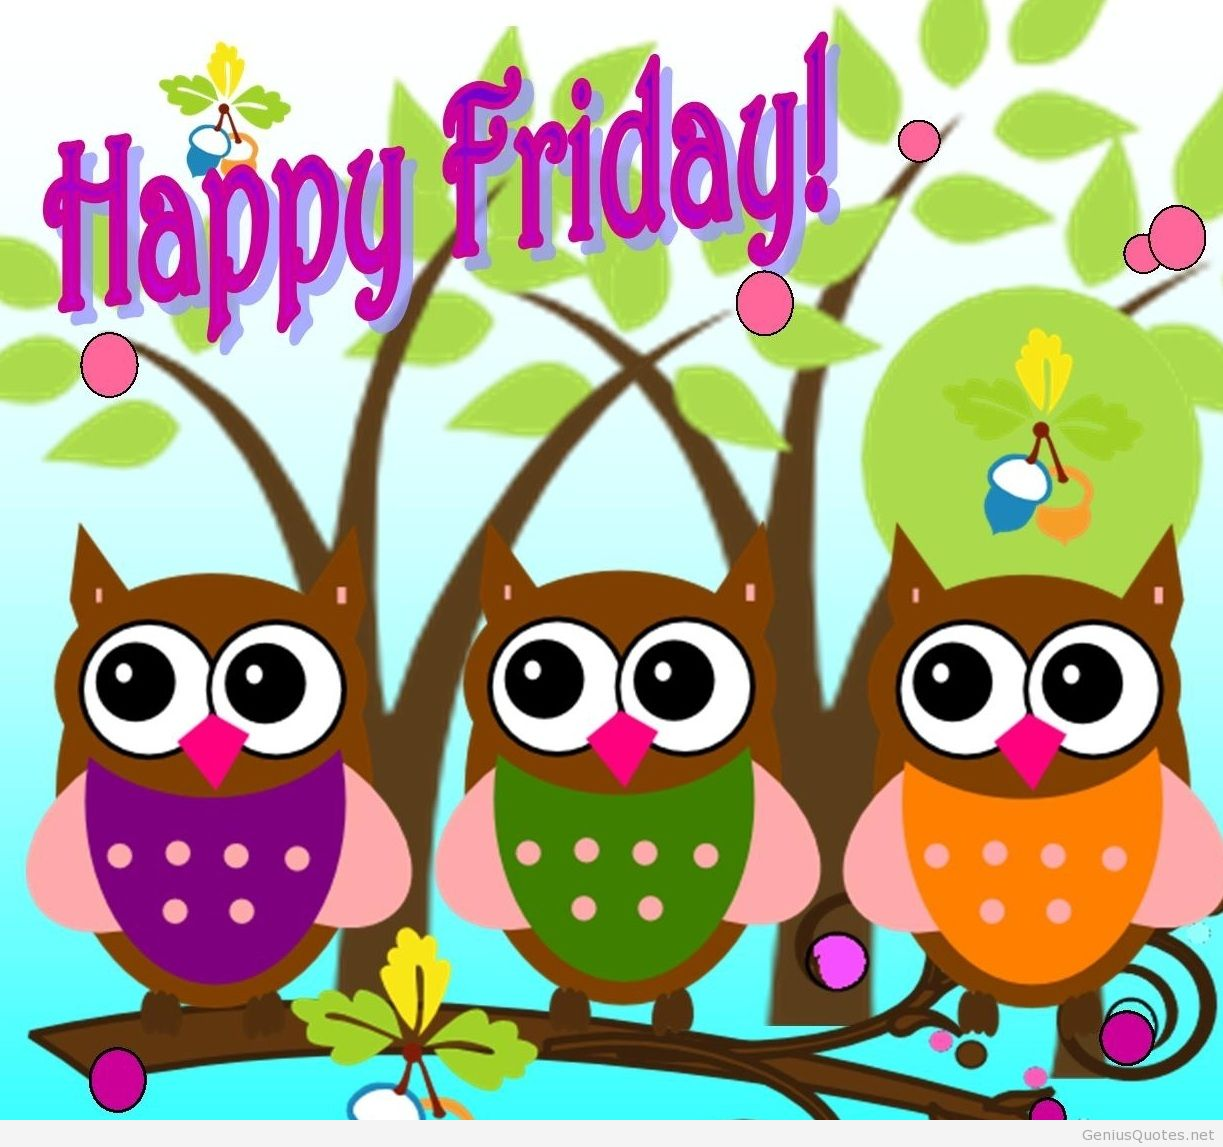 Happy Friday Comments: Funny Happy Friday Clipart